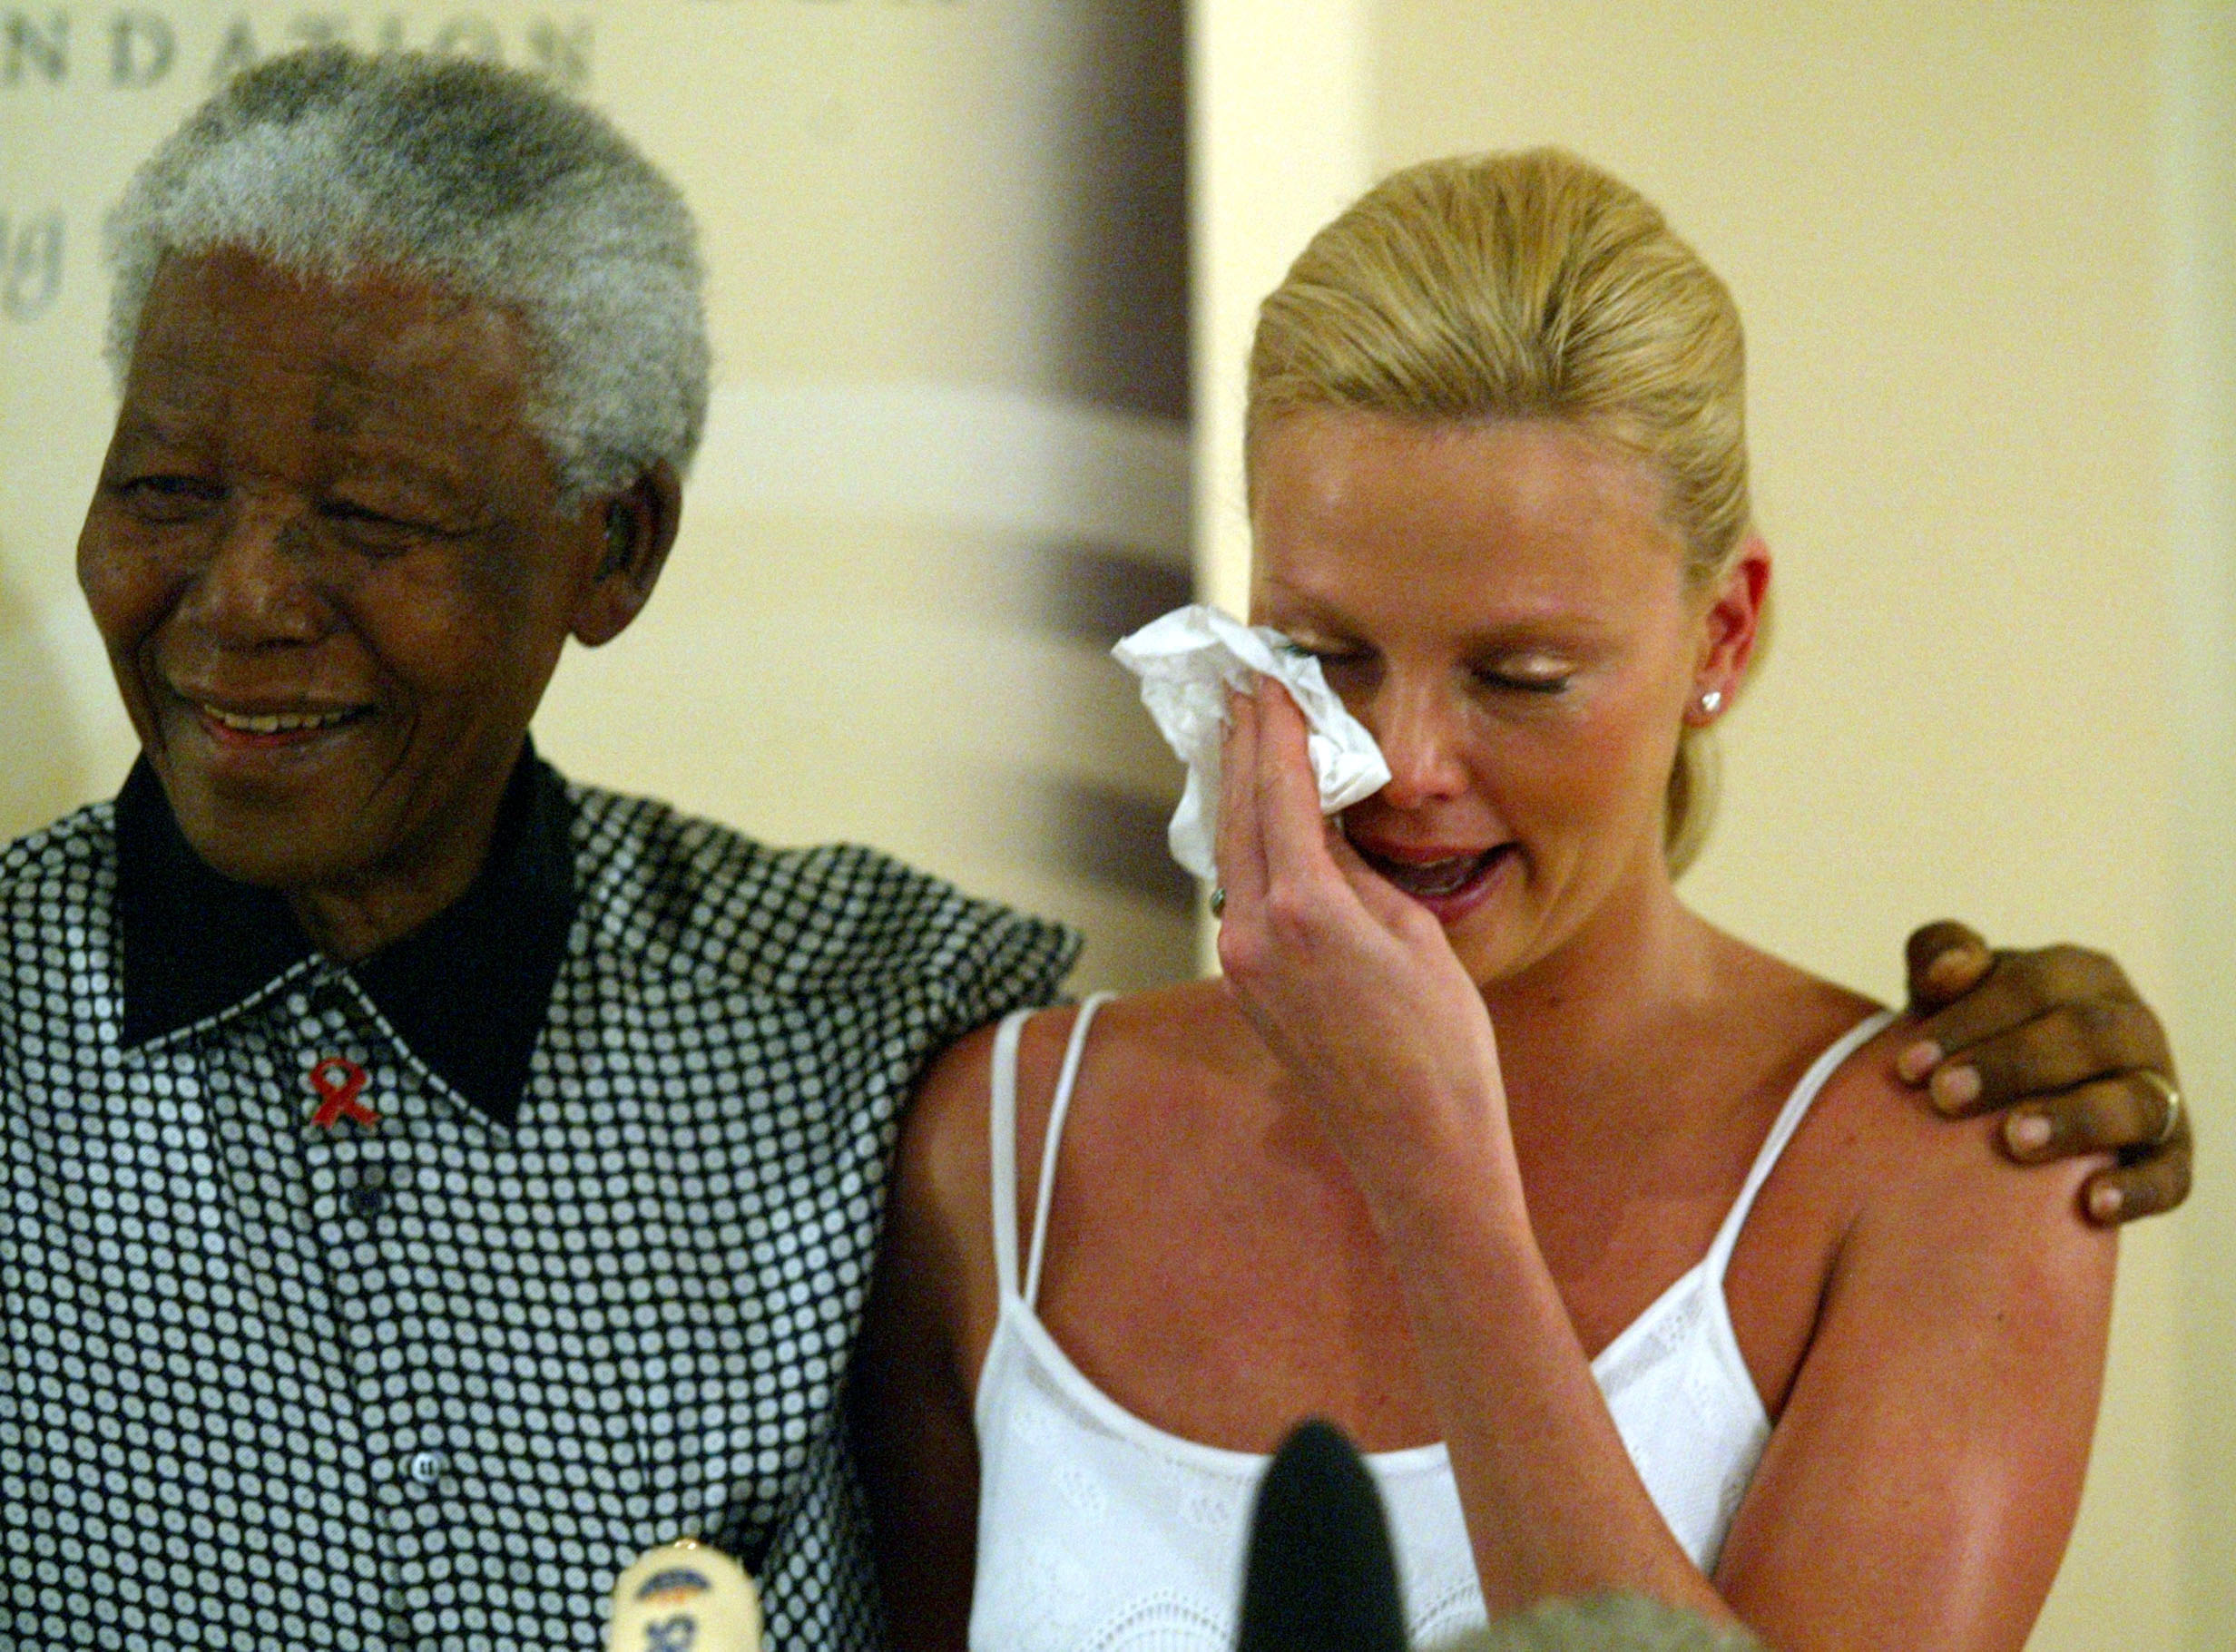 Oscar winning South African actress Charlize Theron weeps at her meeting with former South African President Nelson Mandela (L) at the Nelson Mandela Foundation in Houghton Johannesburg March 11,2004. REUTERS/Juda Ngwenya